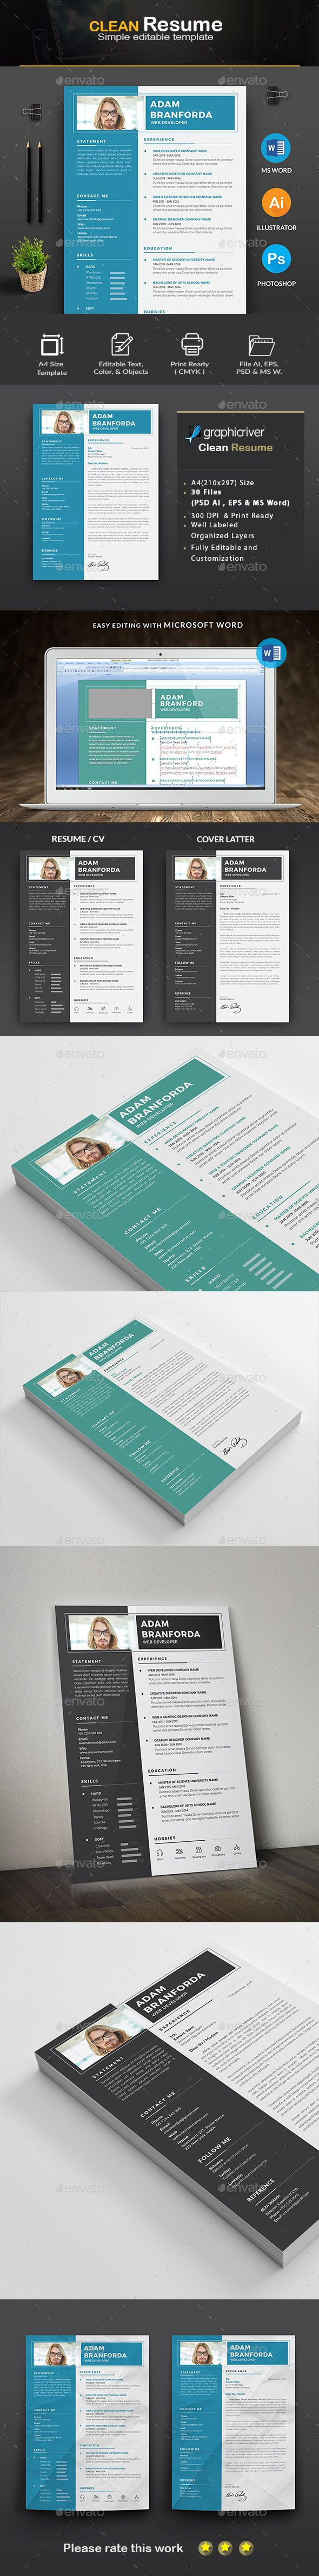 letter format for loan%0A Resume Template PSD  Vector EPS  AI  MS Word